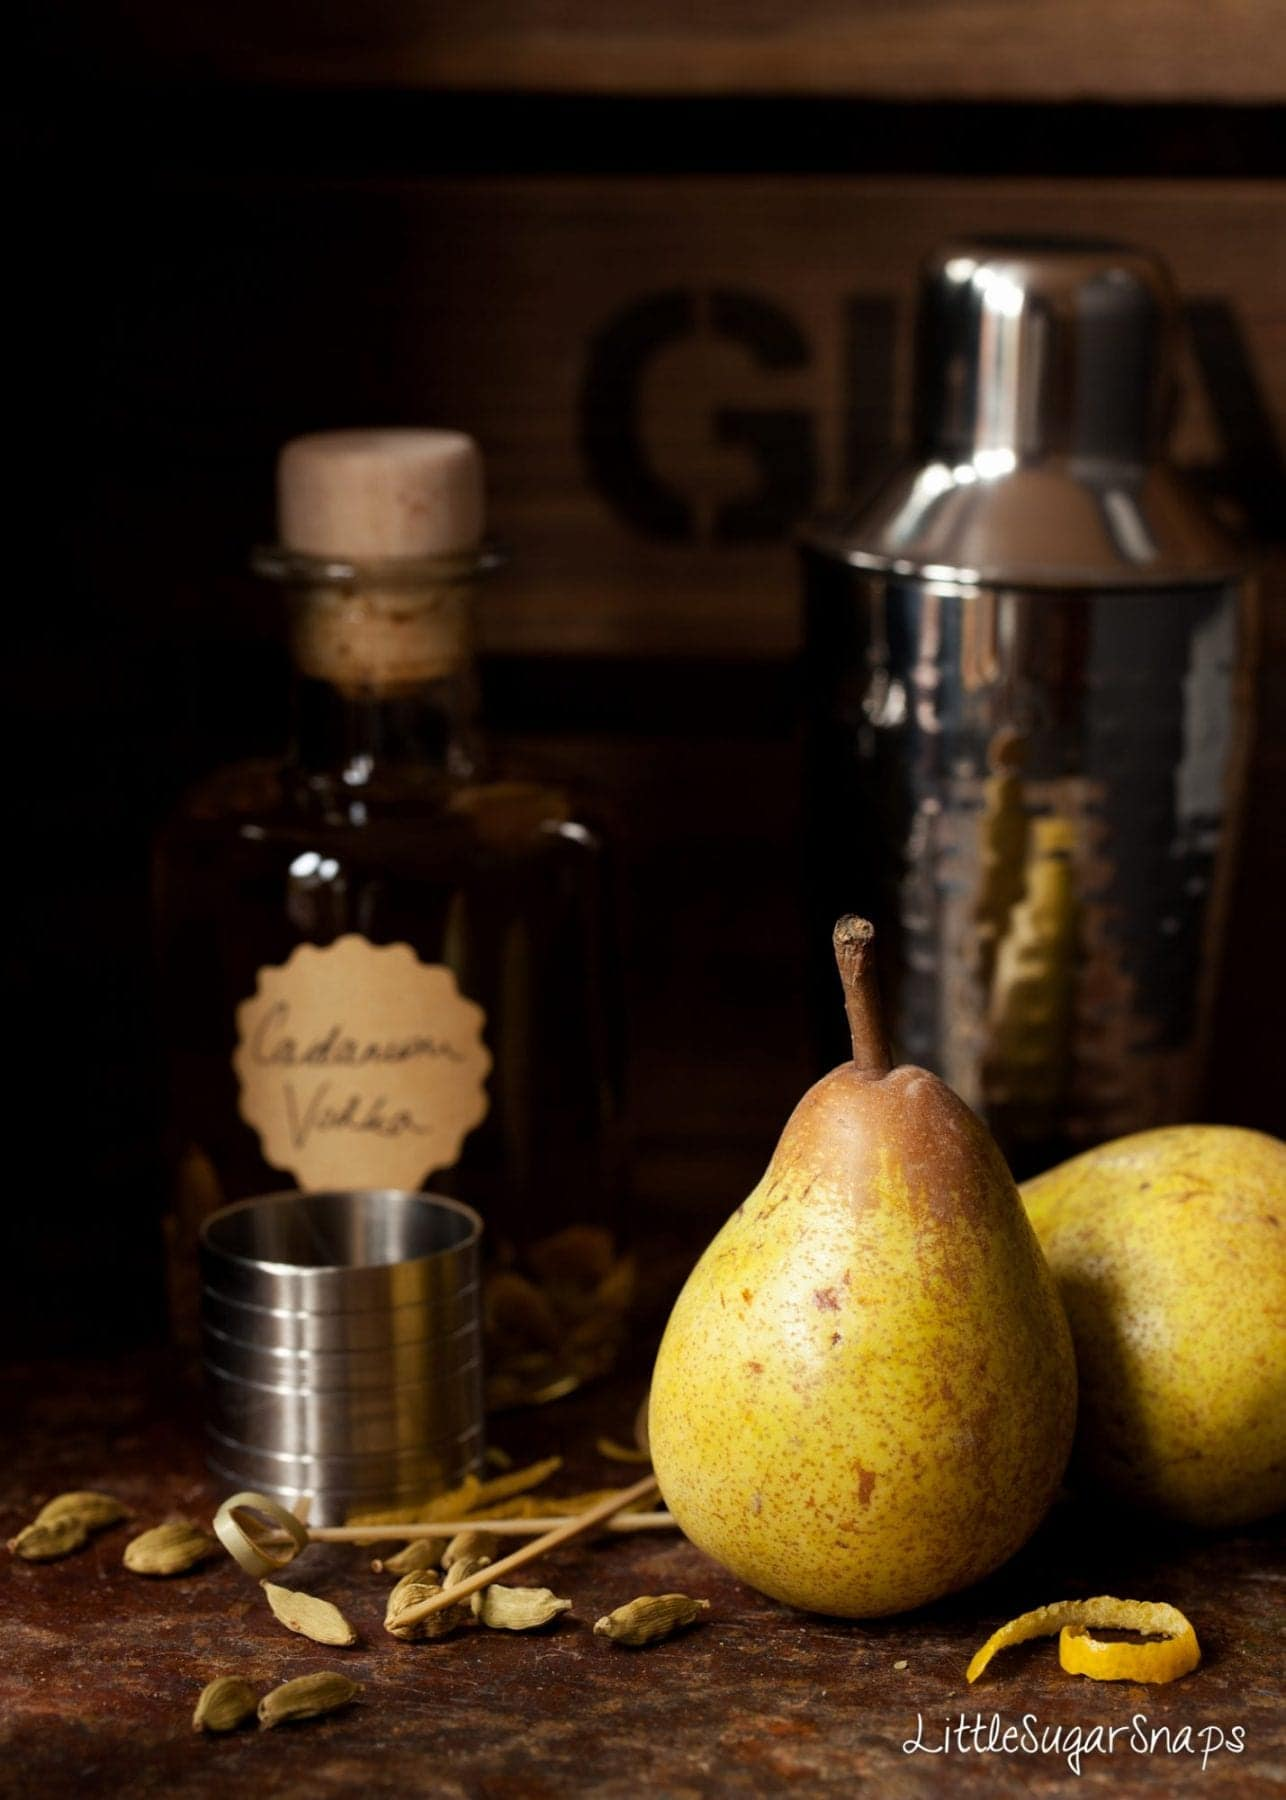 Fresh pears and a bottle of cardamom infused vodka